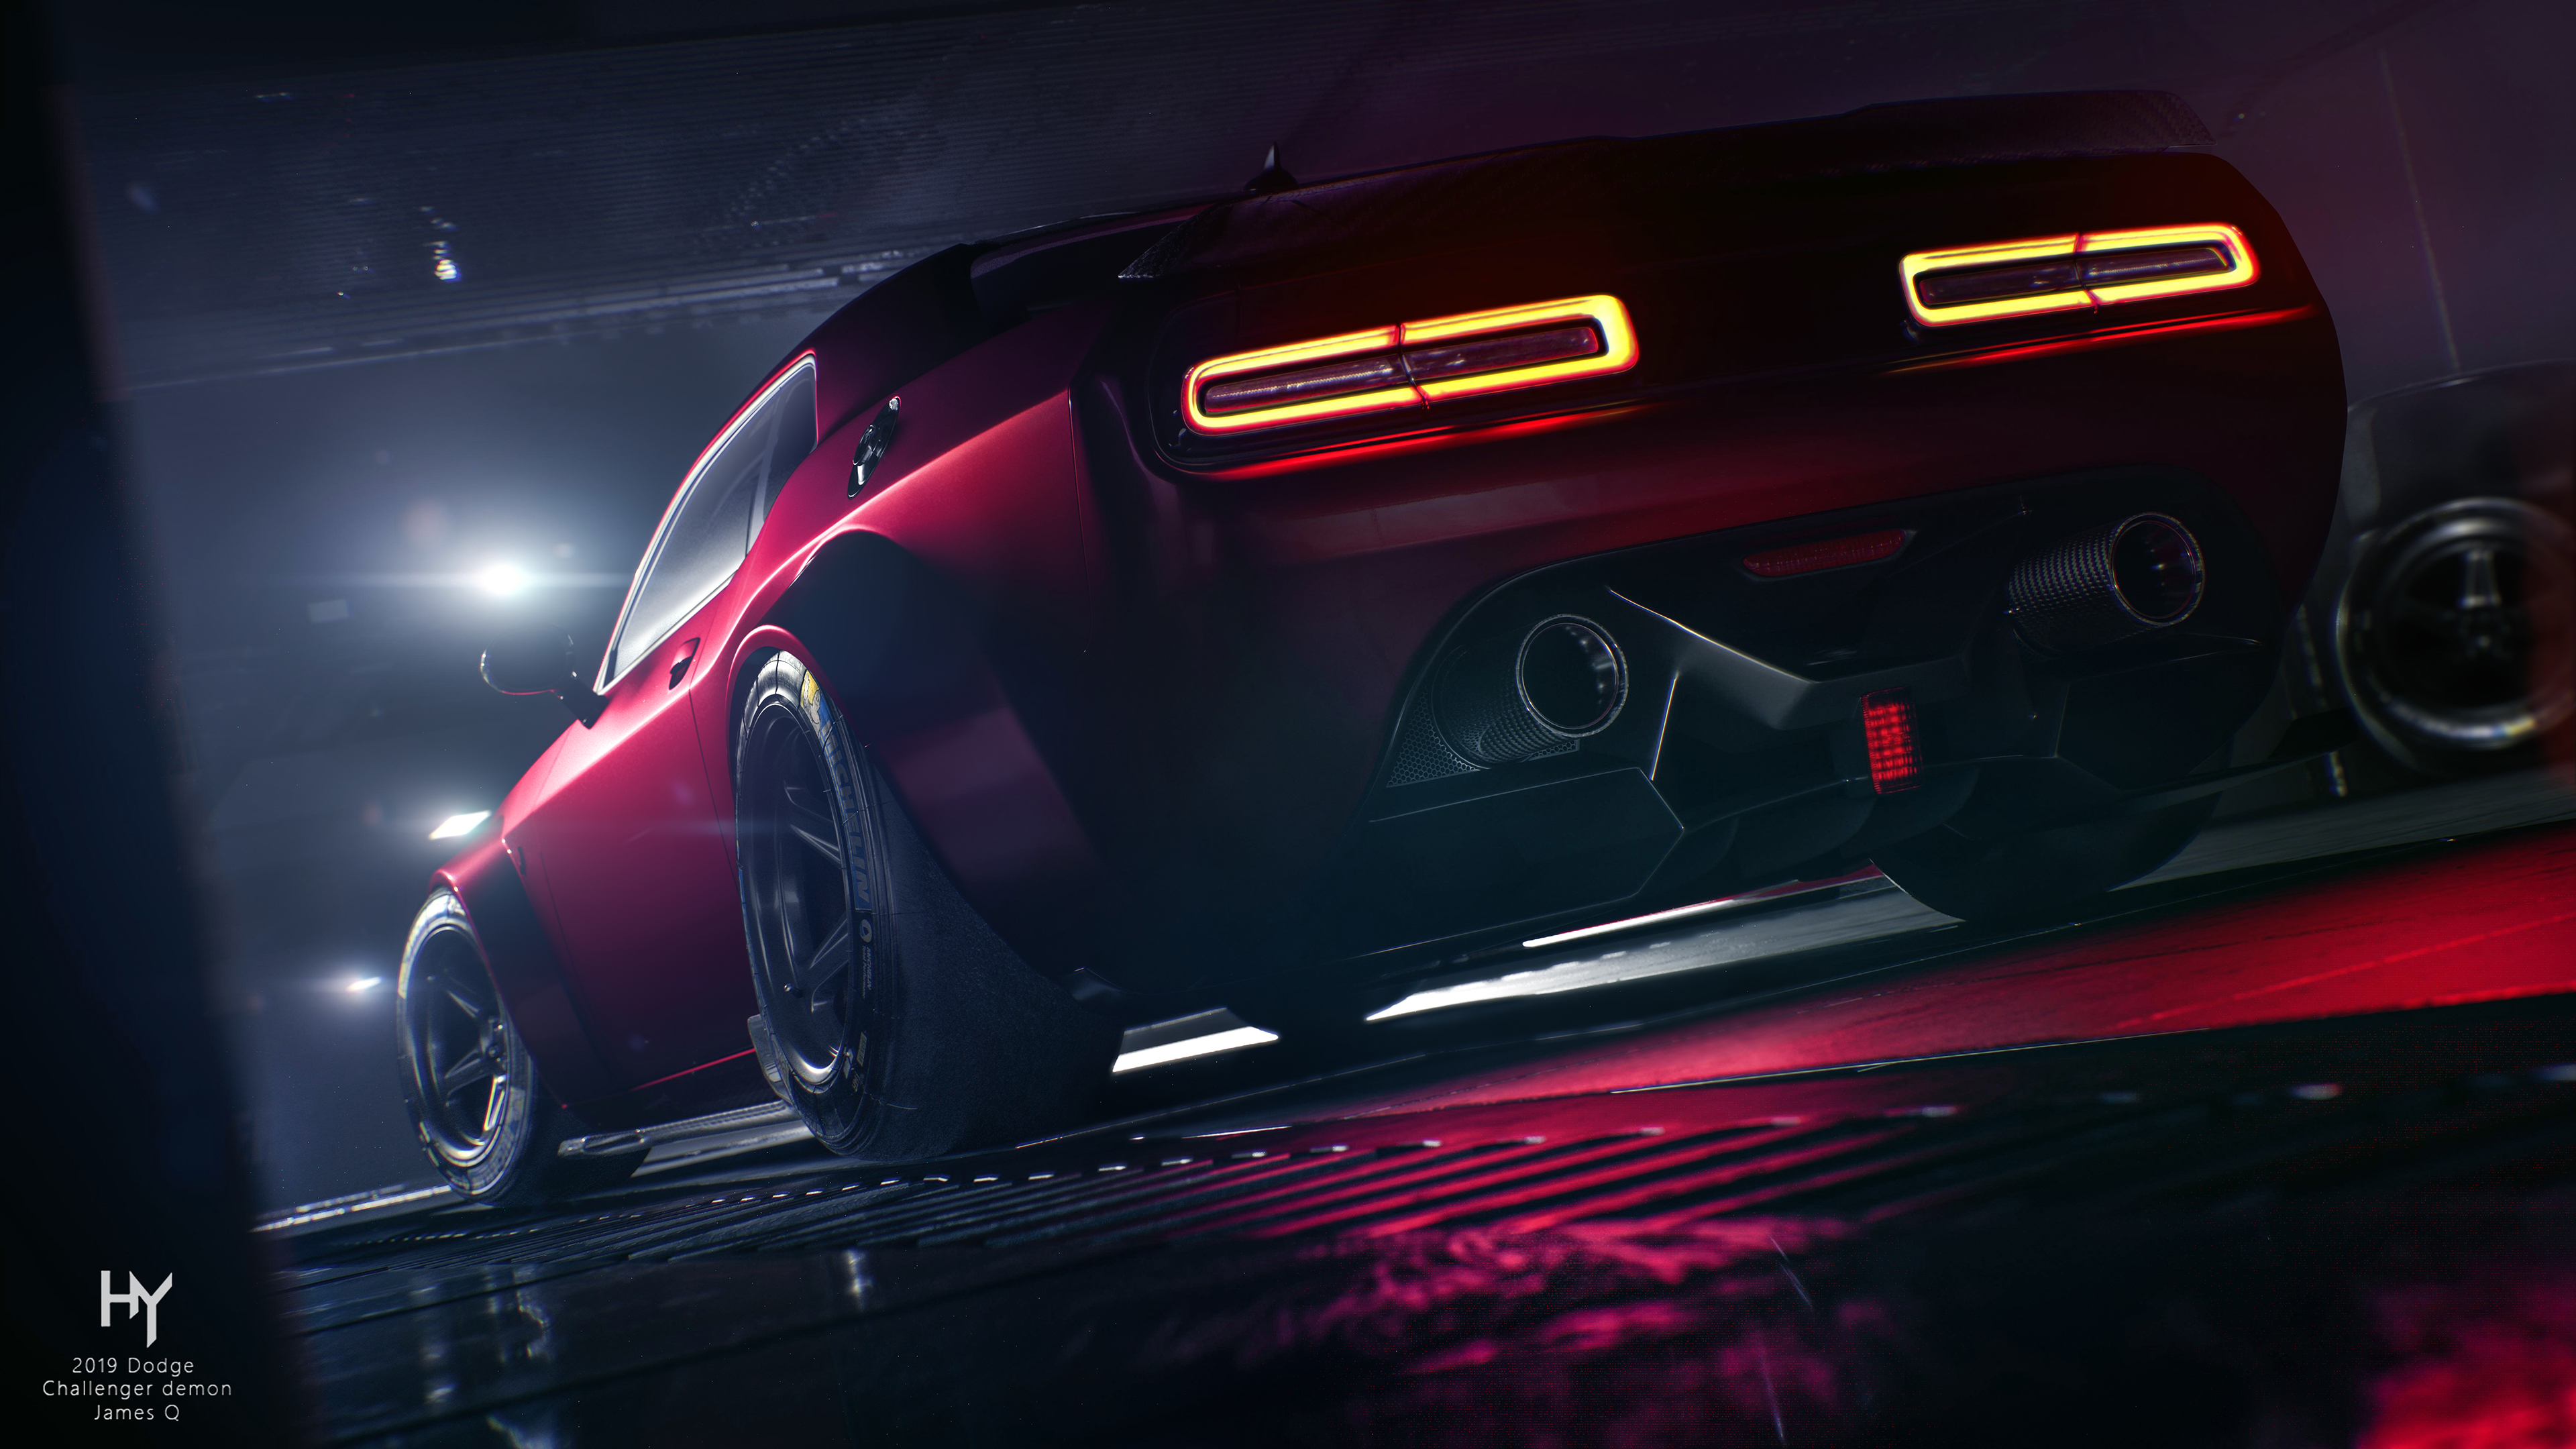 1920x1080 Red Dodge Challenger Rear 4k Laptop Full Hd 1080p Hd 4k Wallpapers Images Backgrounds Photos And Pictures